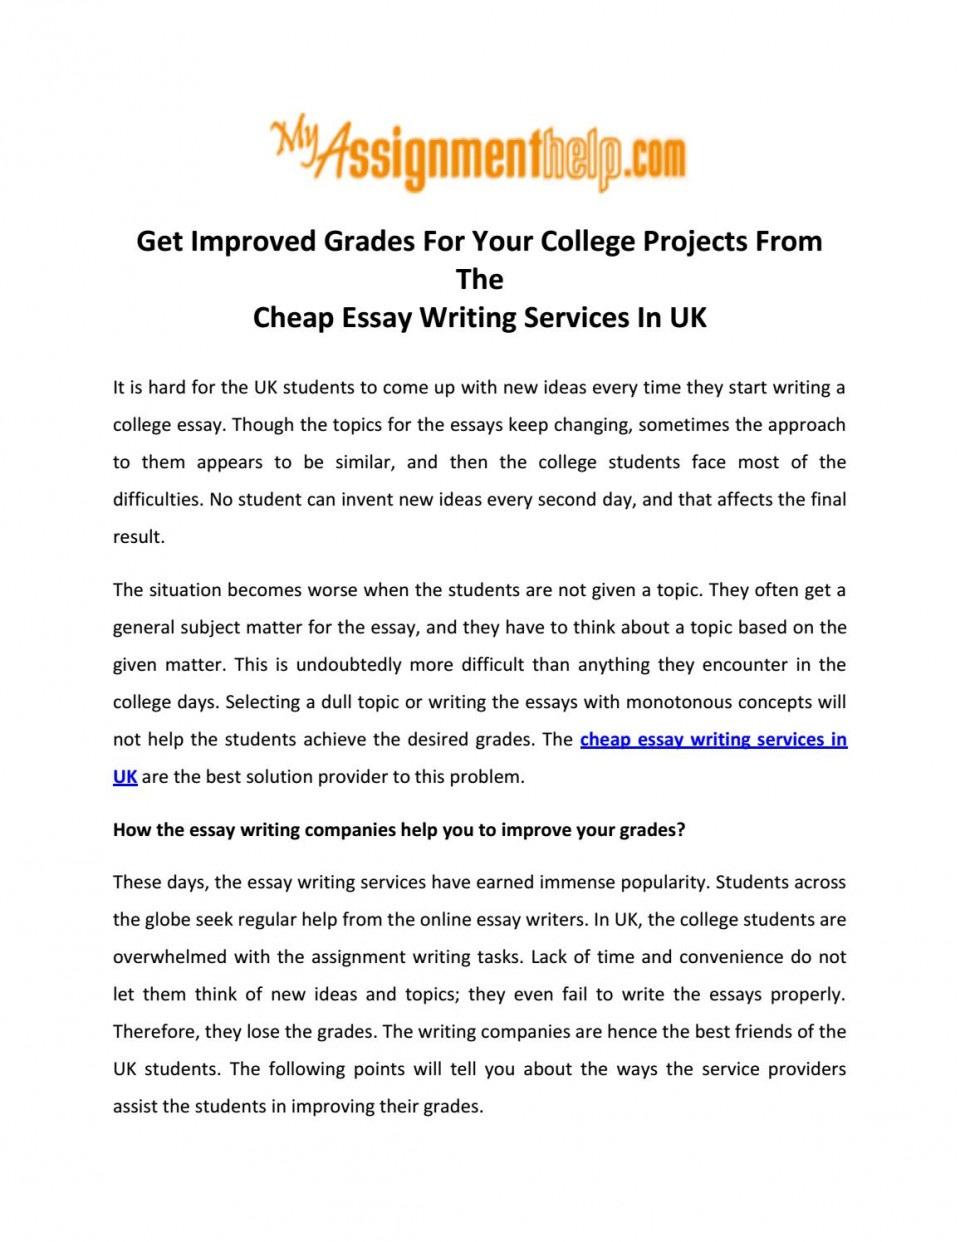 011 Page 1 Essay Example Cheap Writing Unusual Service Review Services Uk Australia 960